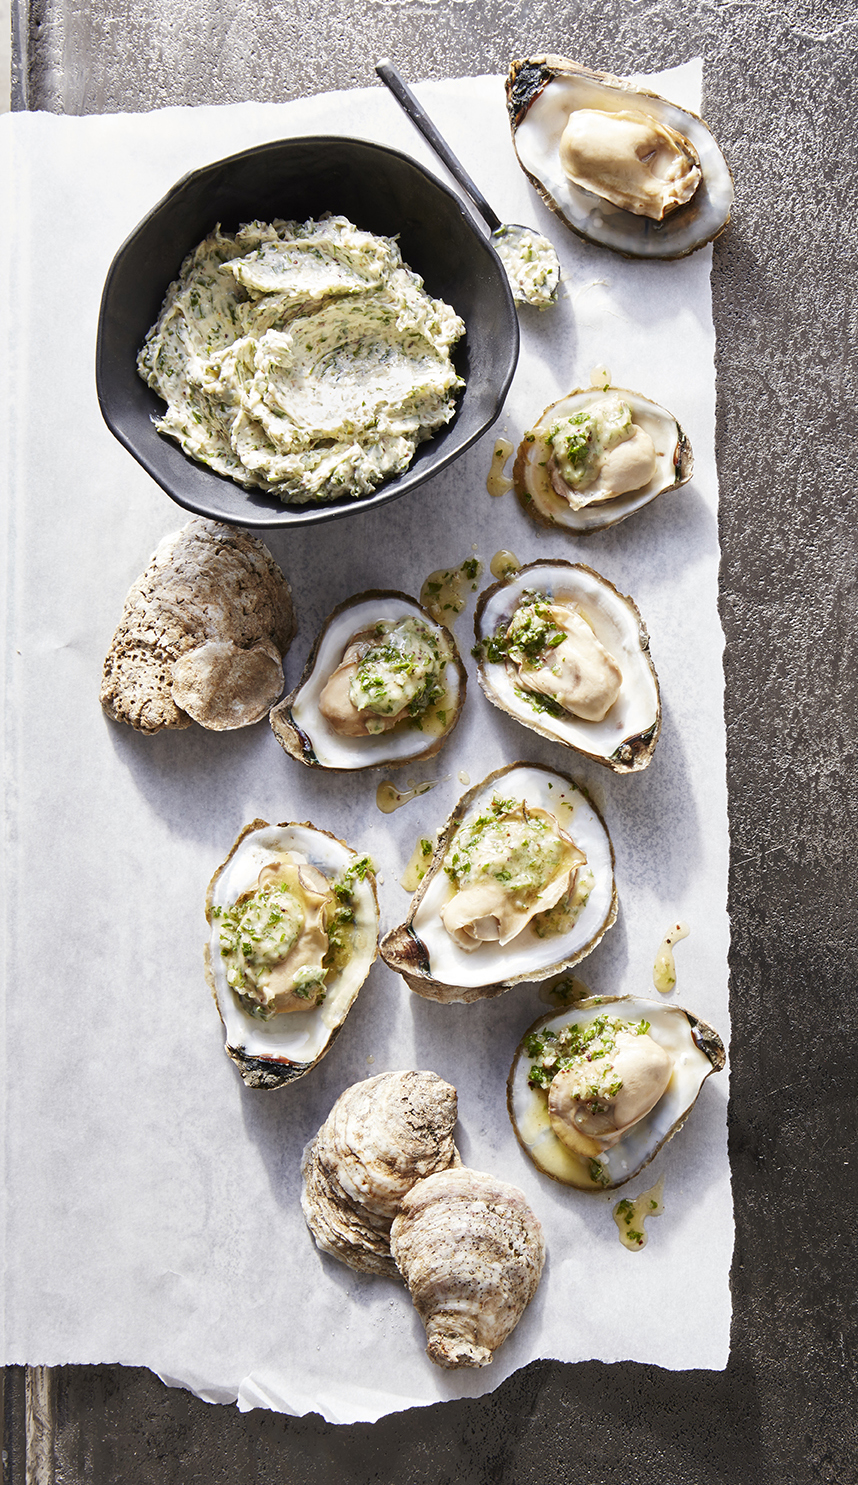 Oyster Roast with Garlic-Parsley Butter